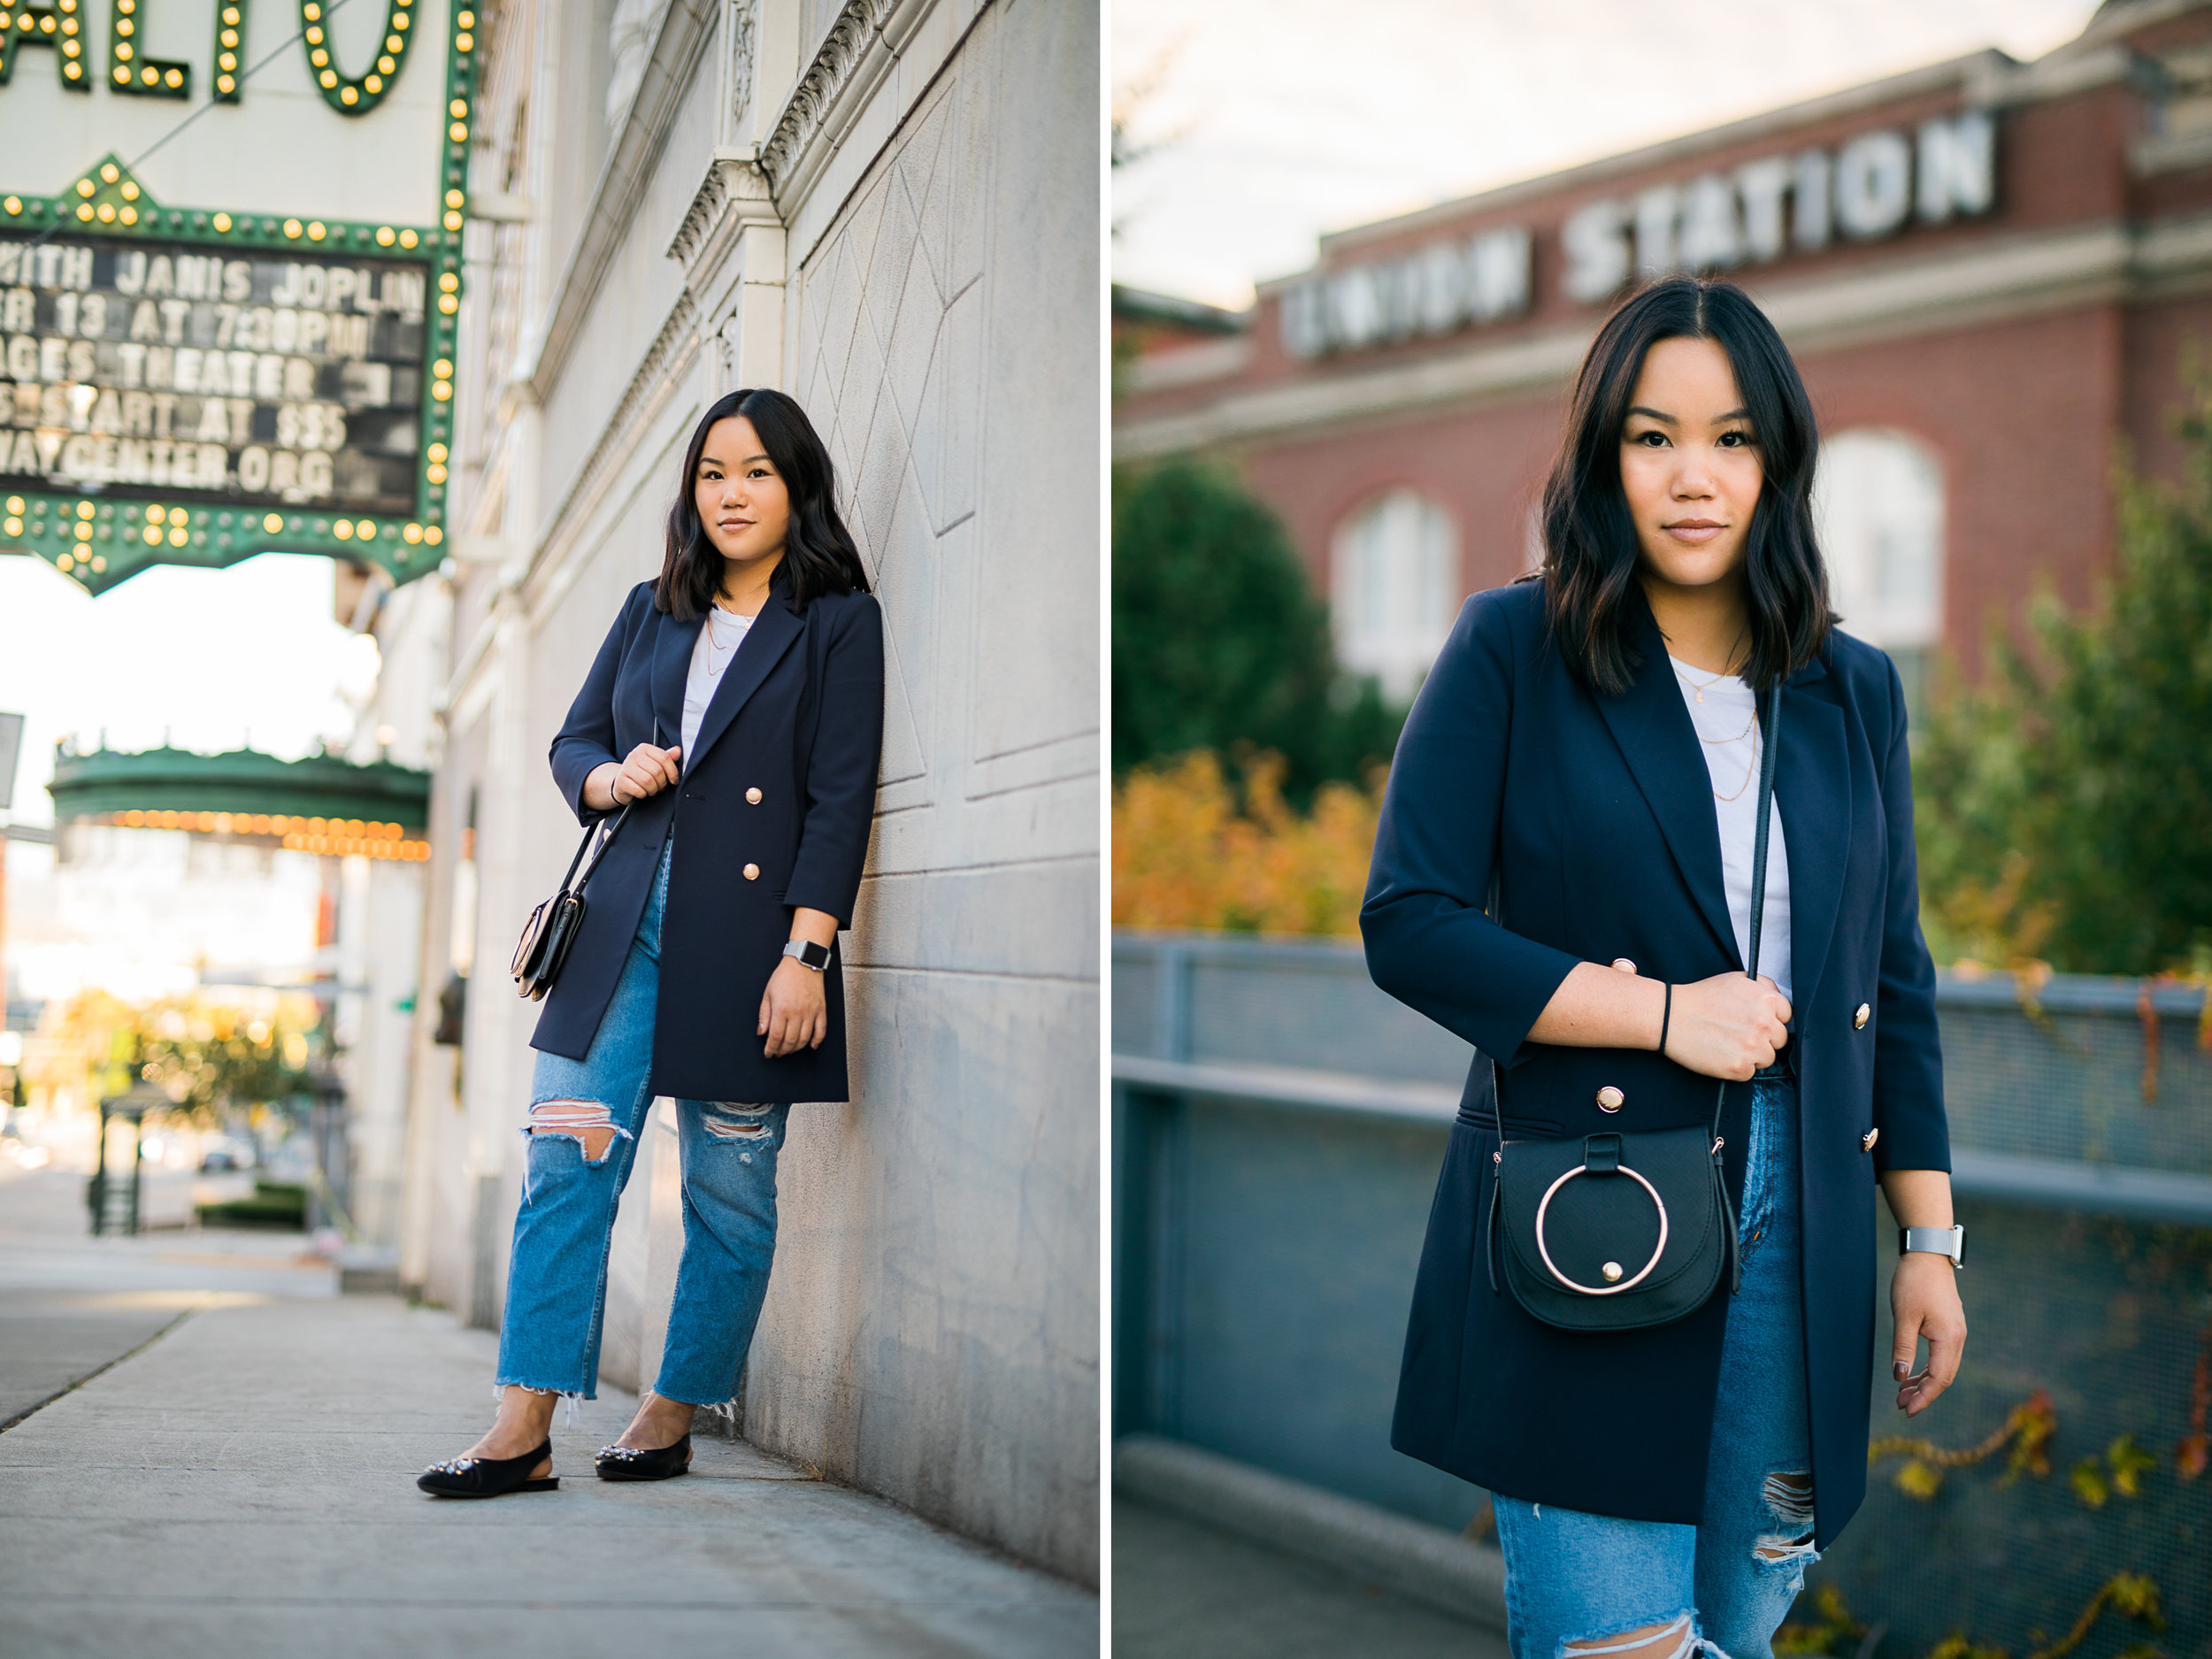 9-23-2017 Stylin Fashion Blog Diptych 2.jpg